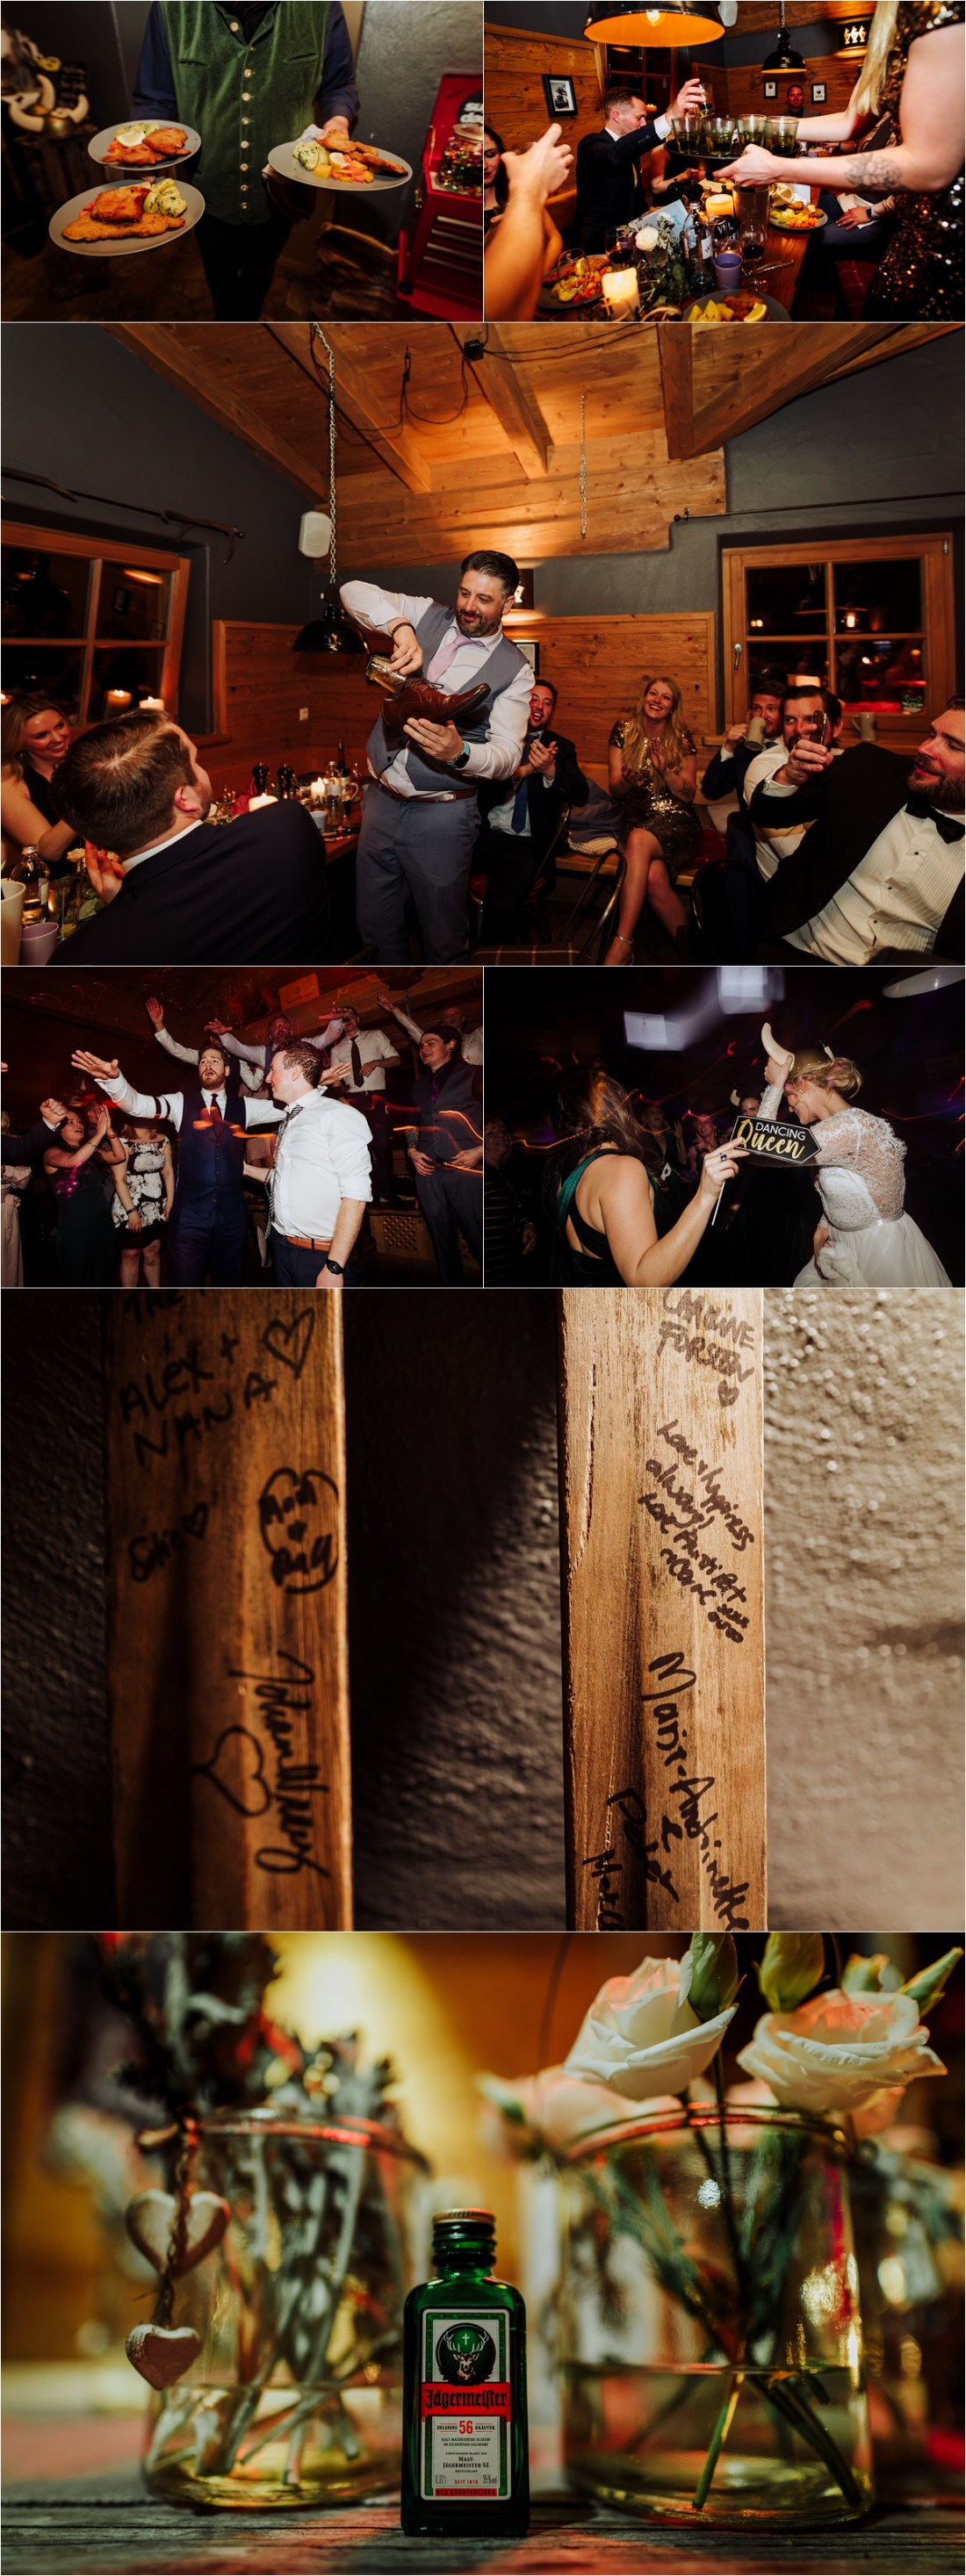 Ganslern Alm wedding reception by Wild Connections Photography